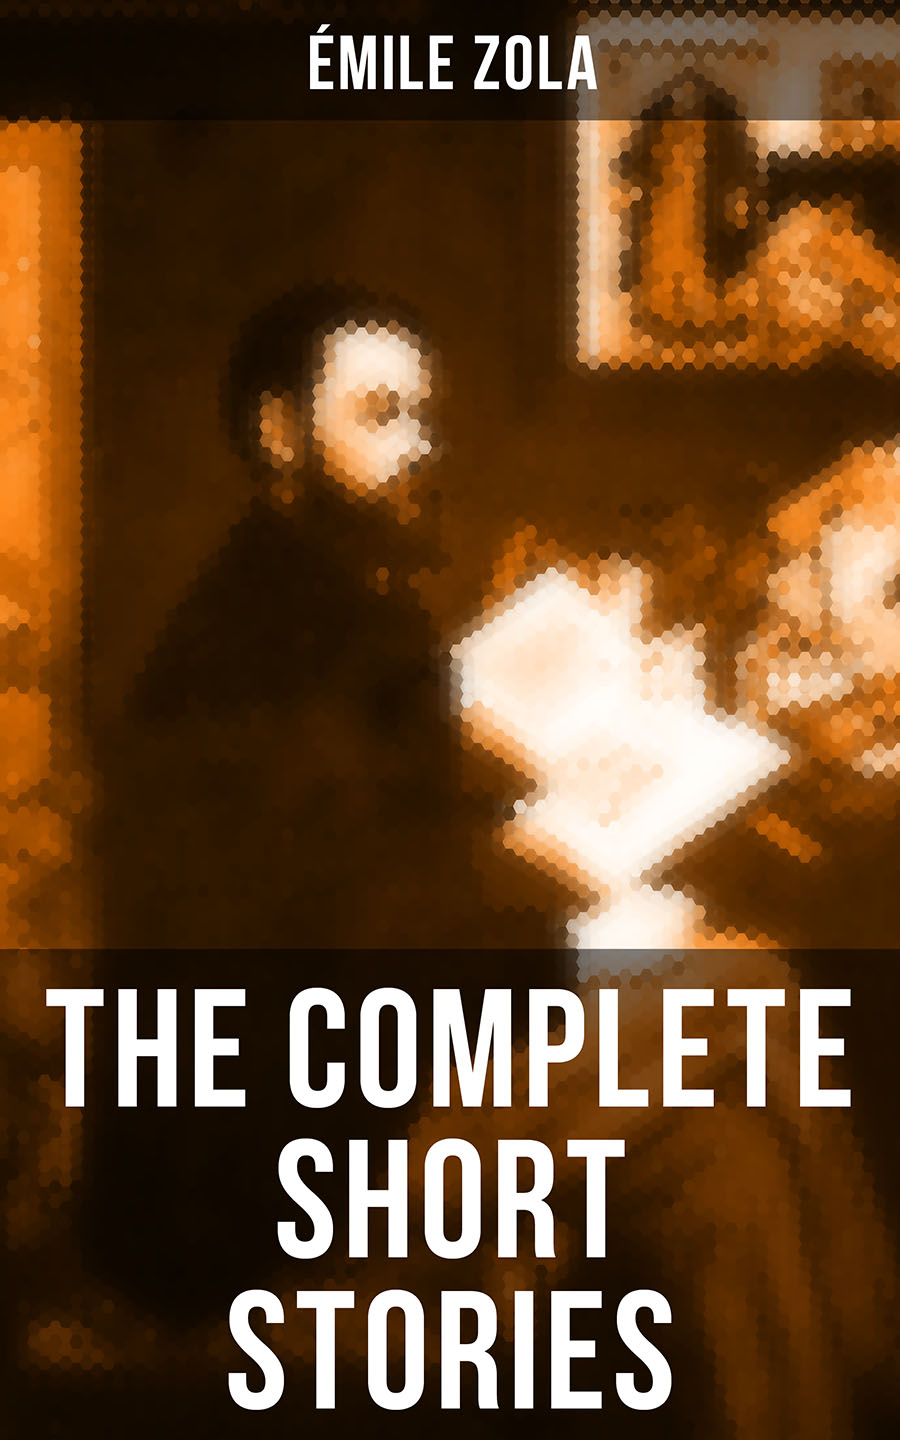 Emile Zola The Complete Short Stories of Émile Zola эмиль золя four short stories by emile zola